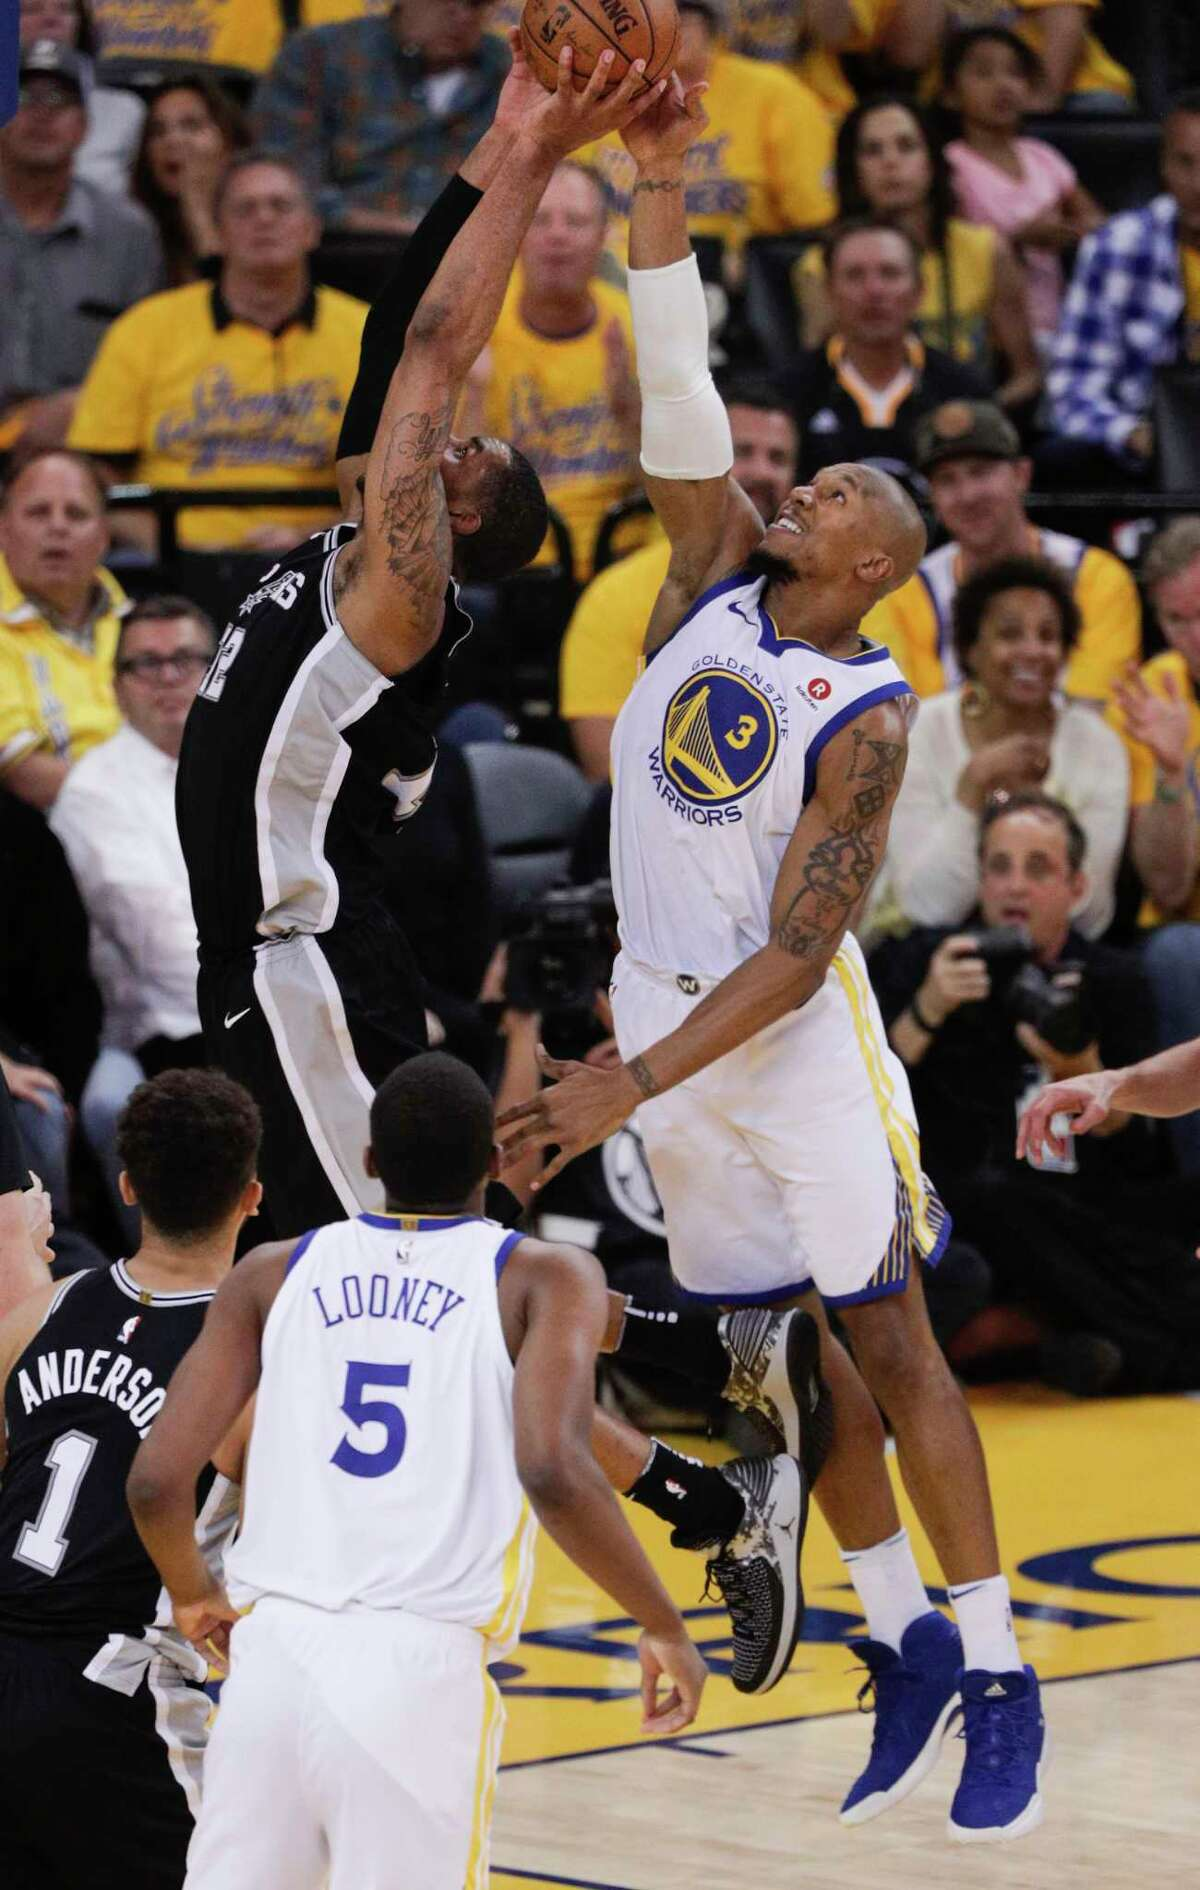 Golden State Warriors' David West blocks a shot by San Antonio Spurs' LaMarcus Aldridge in the first quarter during game 5 of round 1 of the Western Conference Finals at Oracle Arena on Wednesday, April 25, 2018 in Oakland, Calif.